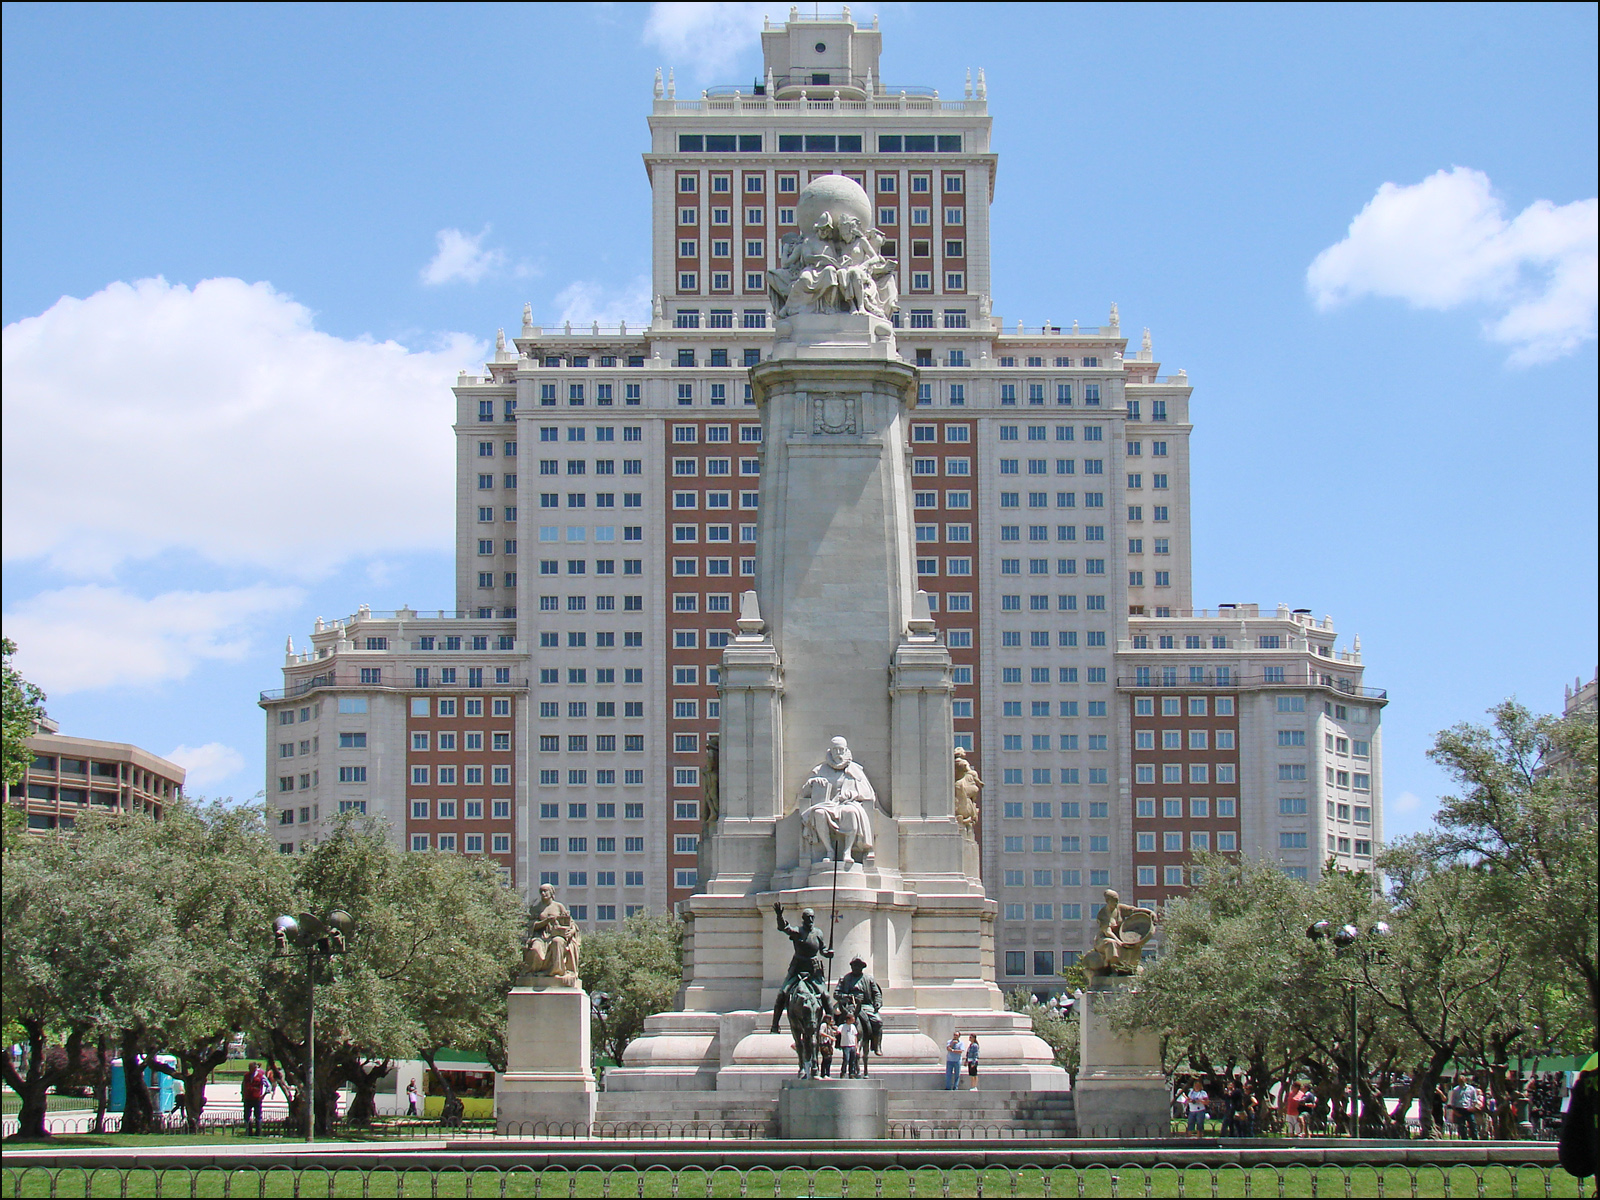 File:Monumento a Cervantes (Madrid) 20.jpg - Wikimedia Commons